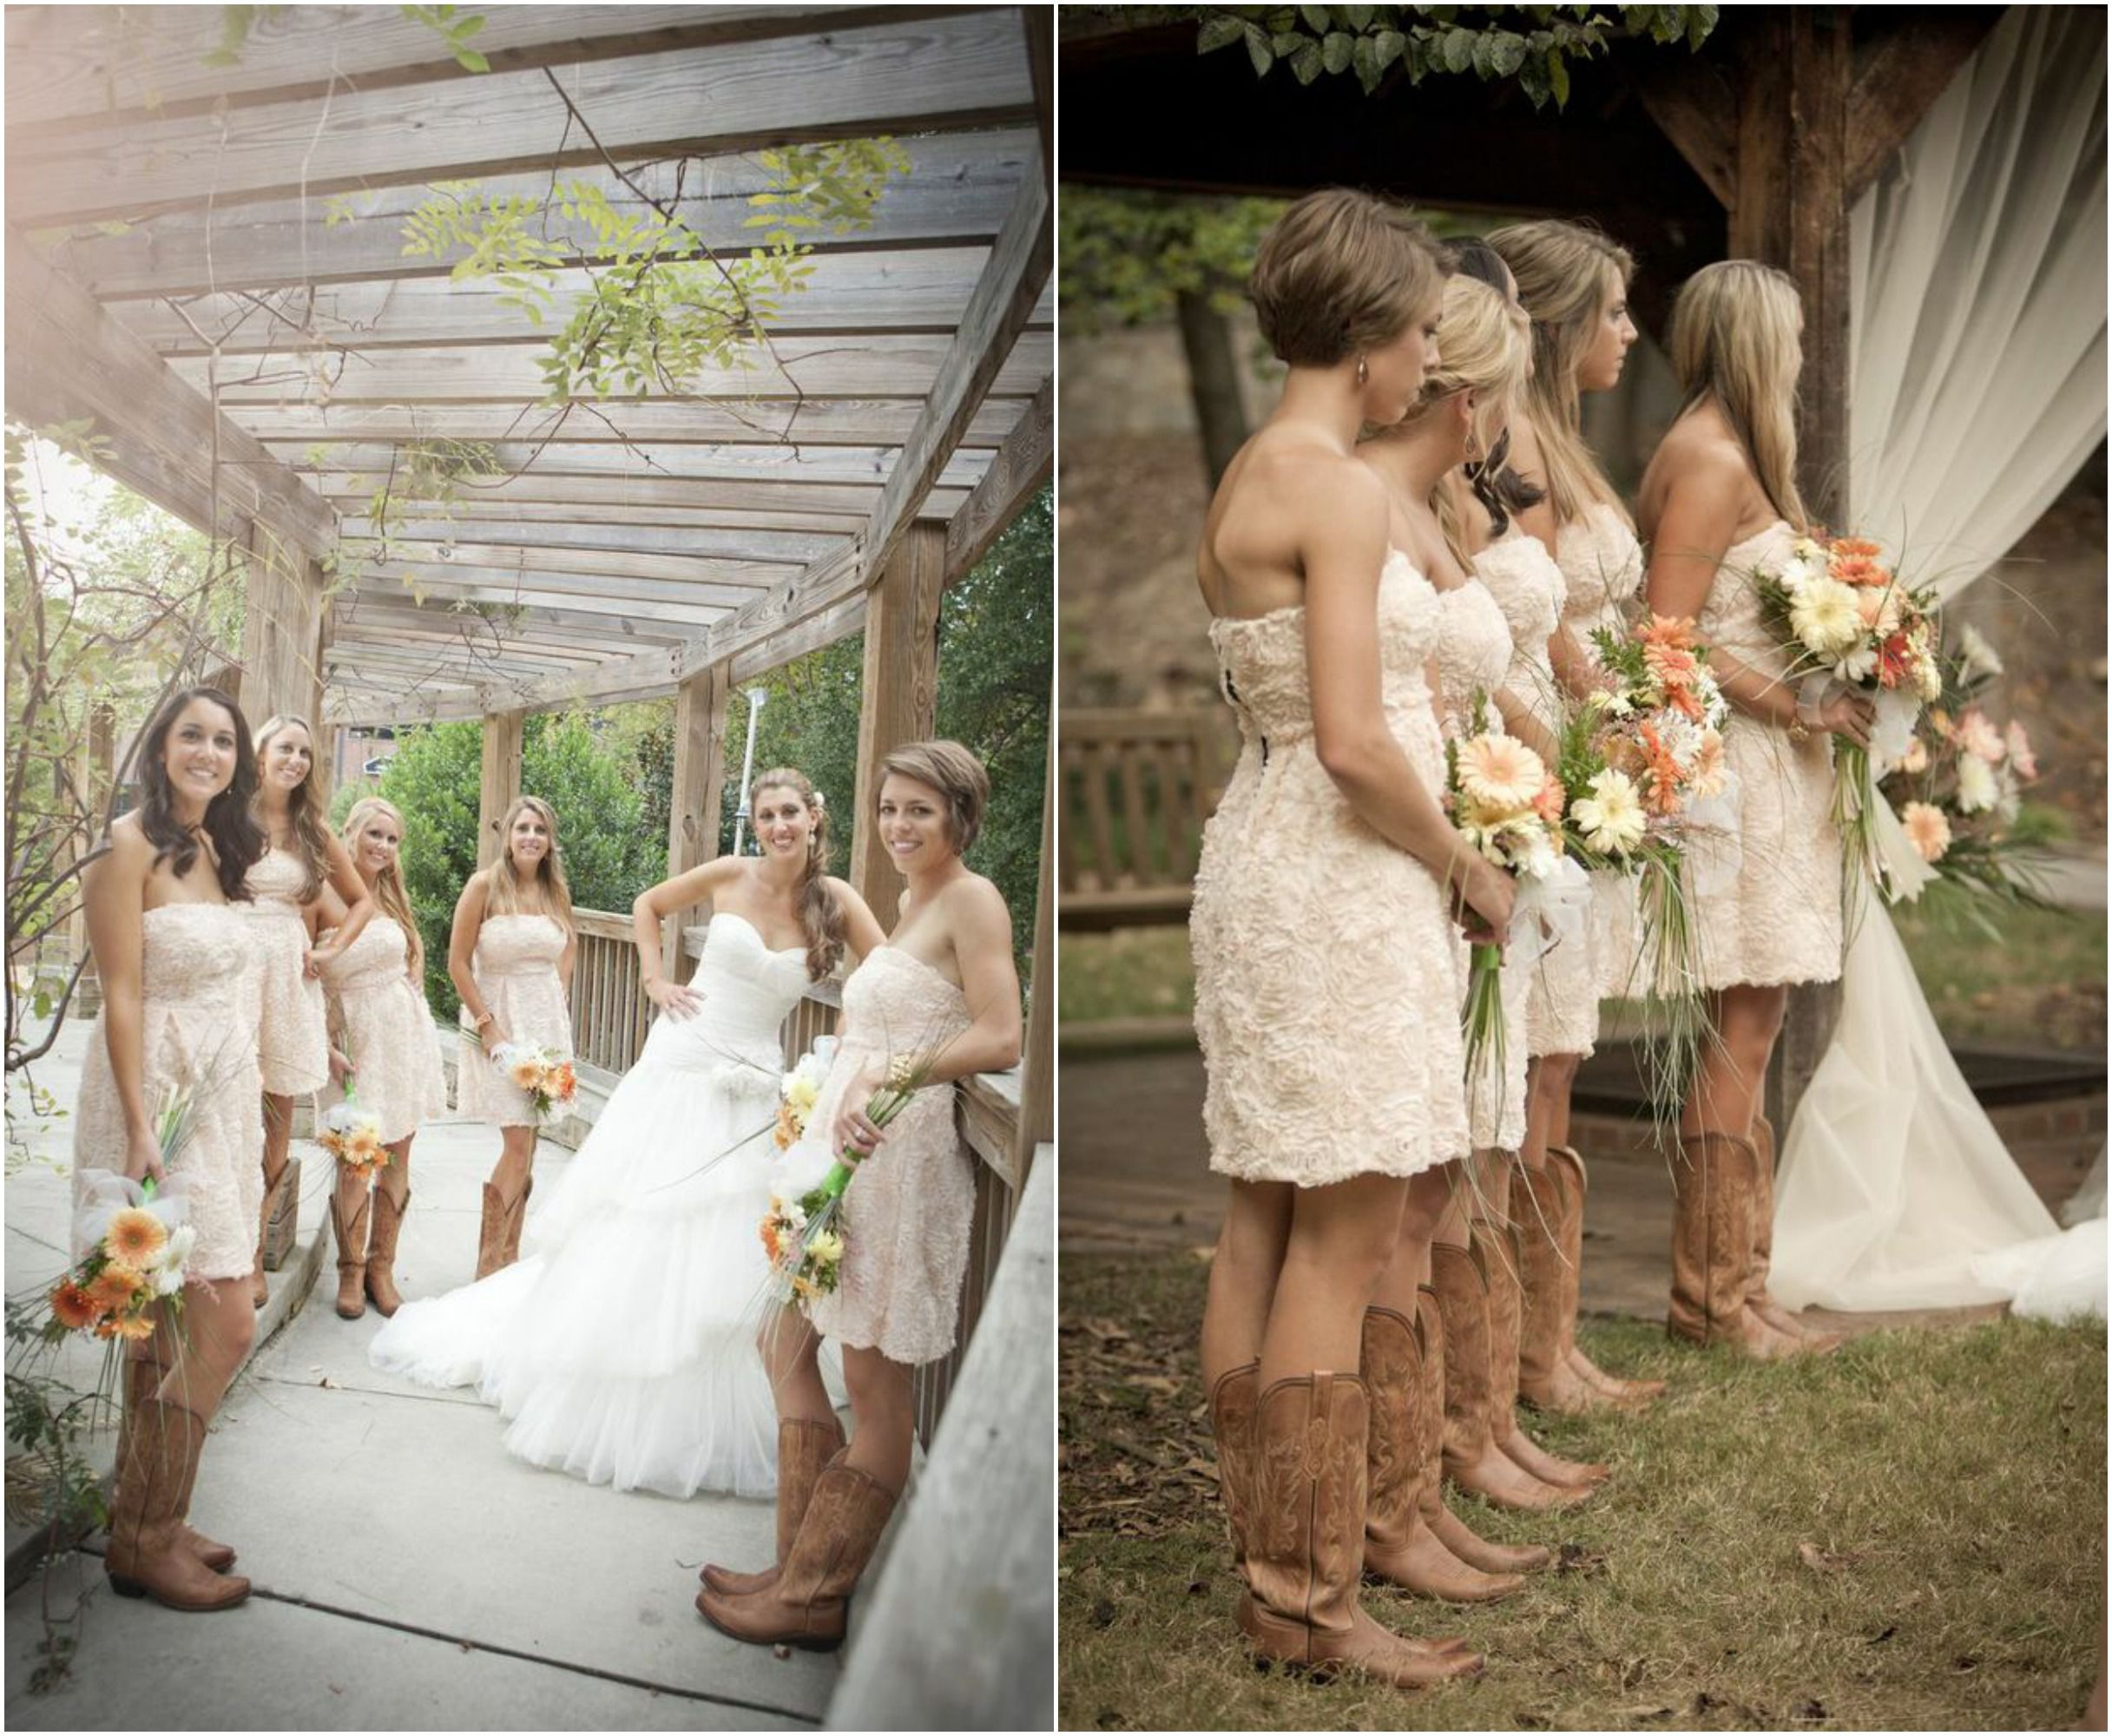 Rustic Wedding With Bridesmaids In Cowboy Boots  Rustic